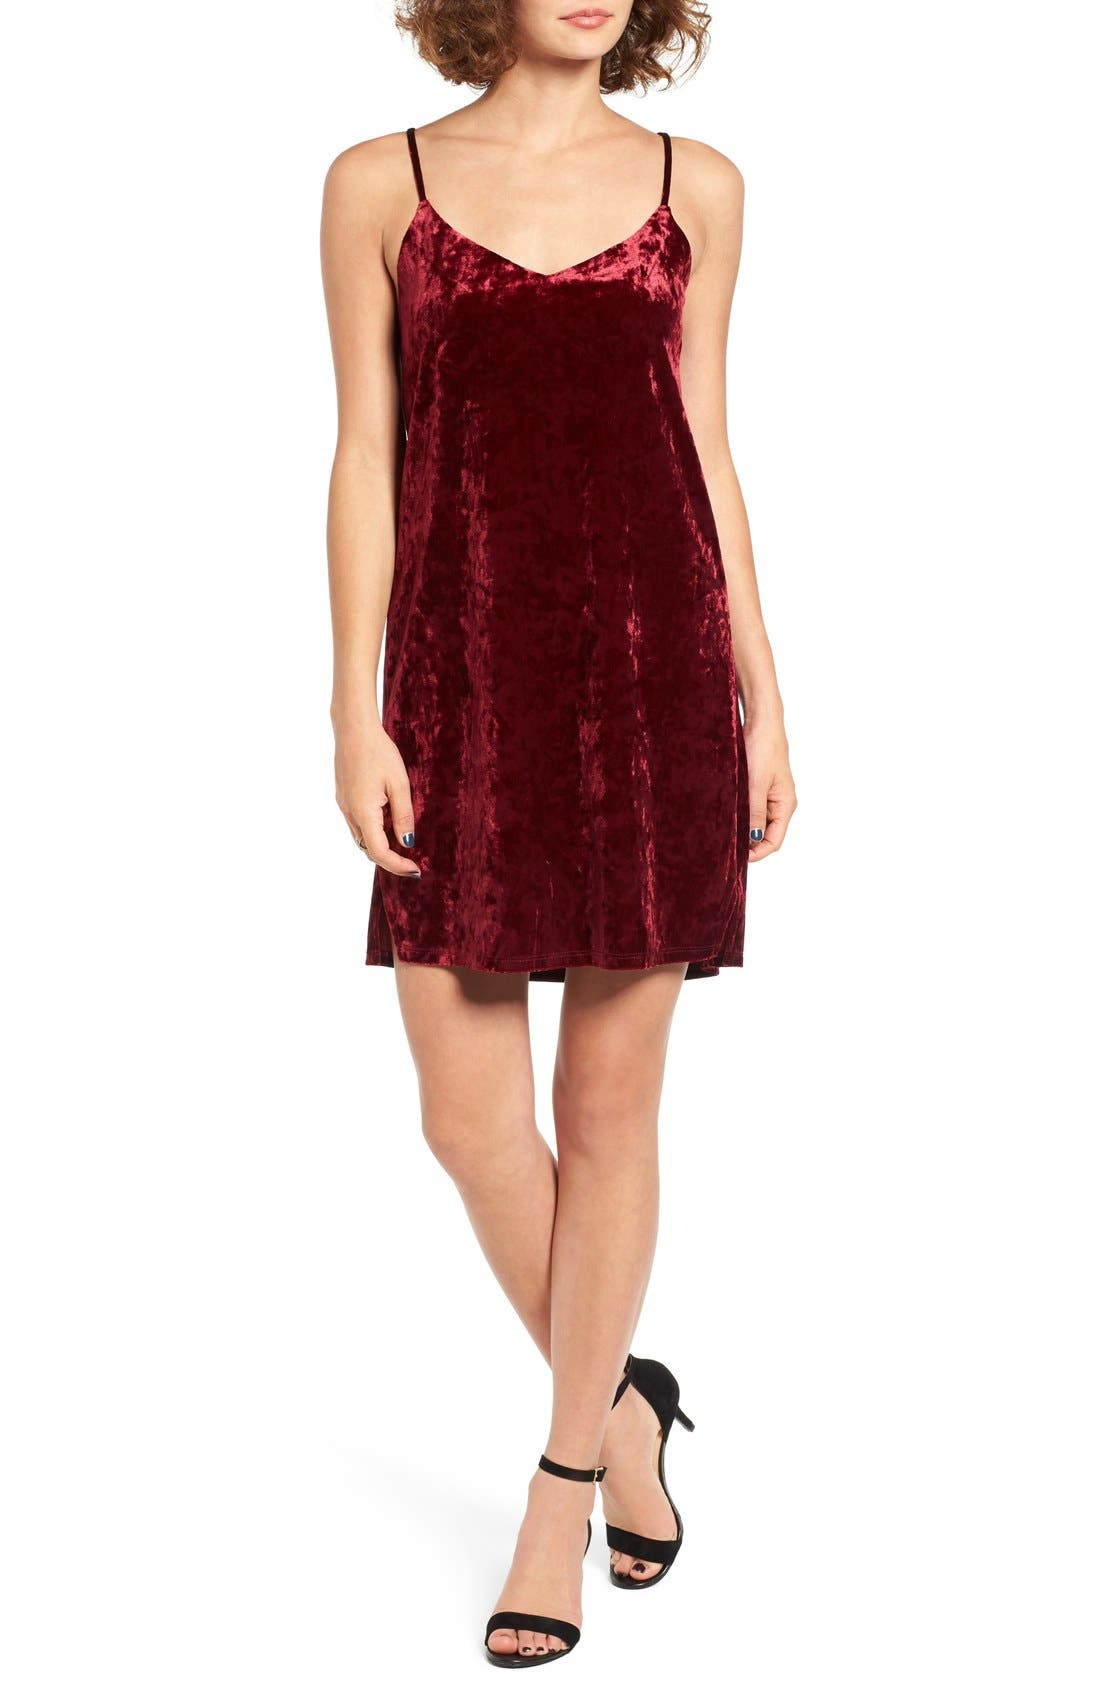 Alternate Image 1 Selected - Socialite Crushed Velvet Camisole Swing Dress